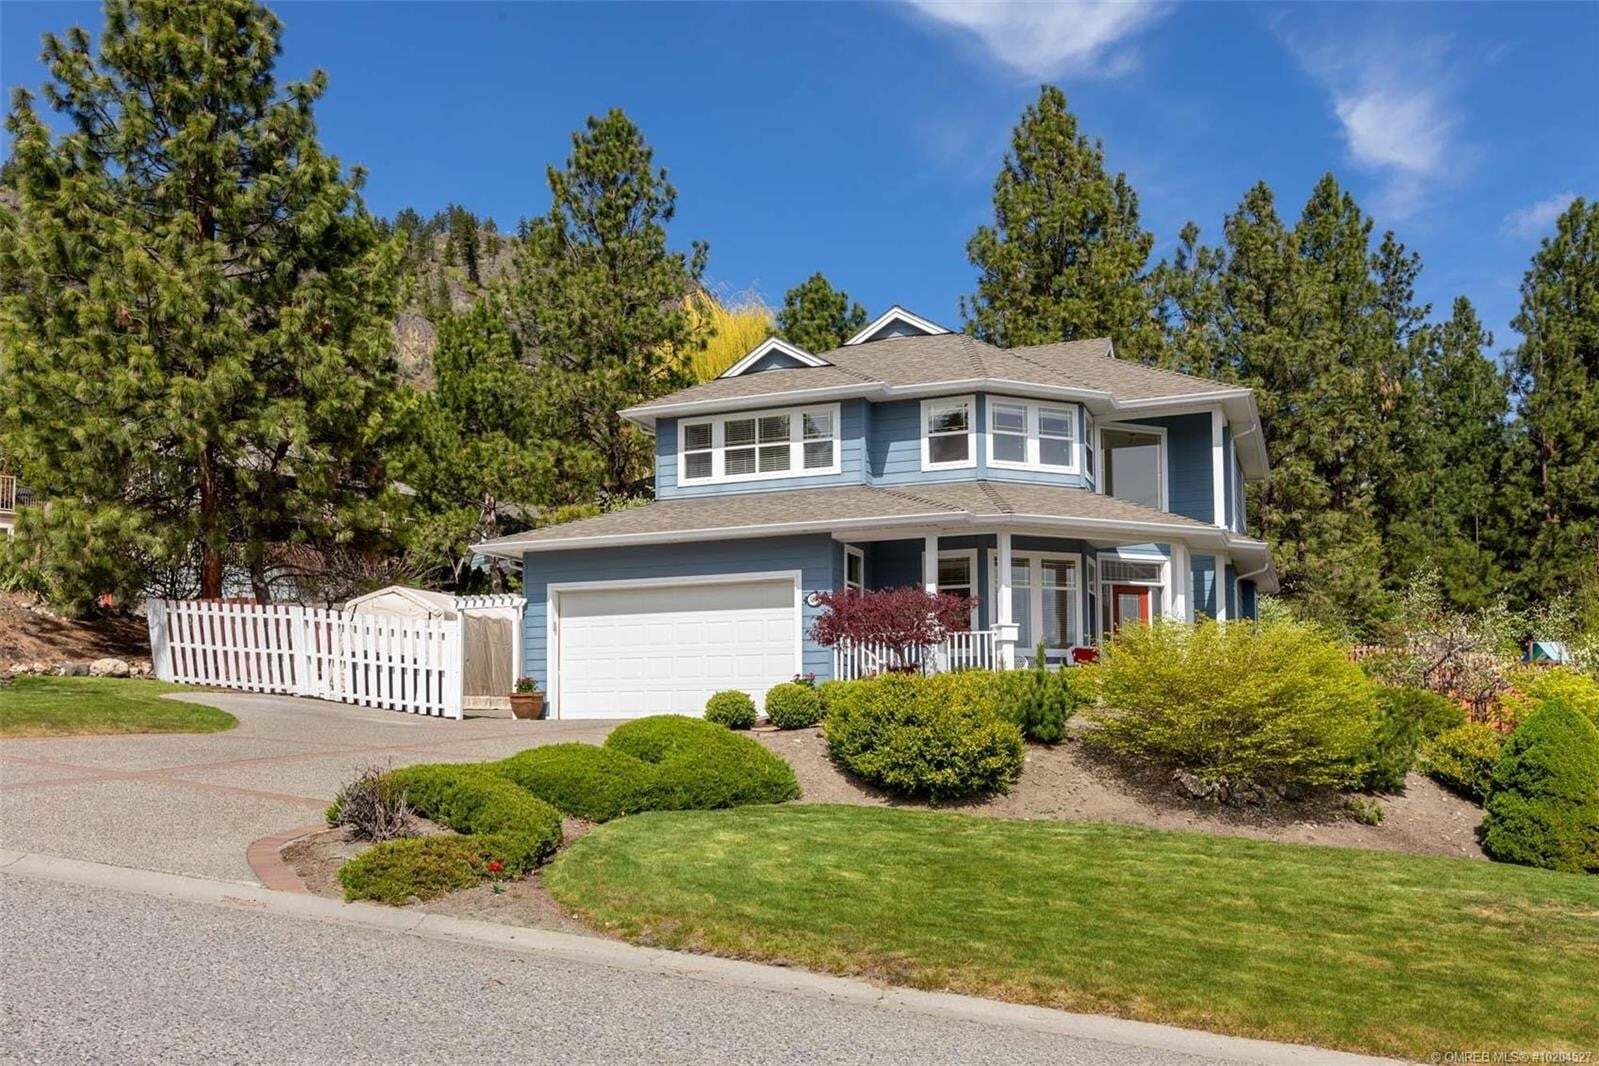 House for sale at 3040 Lakeview Cove Rd West Kelowna British Columbia - MLS: 10204527